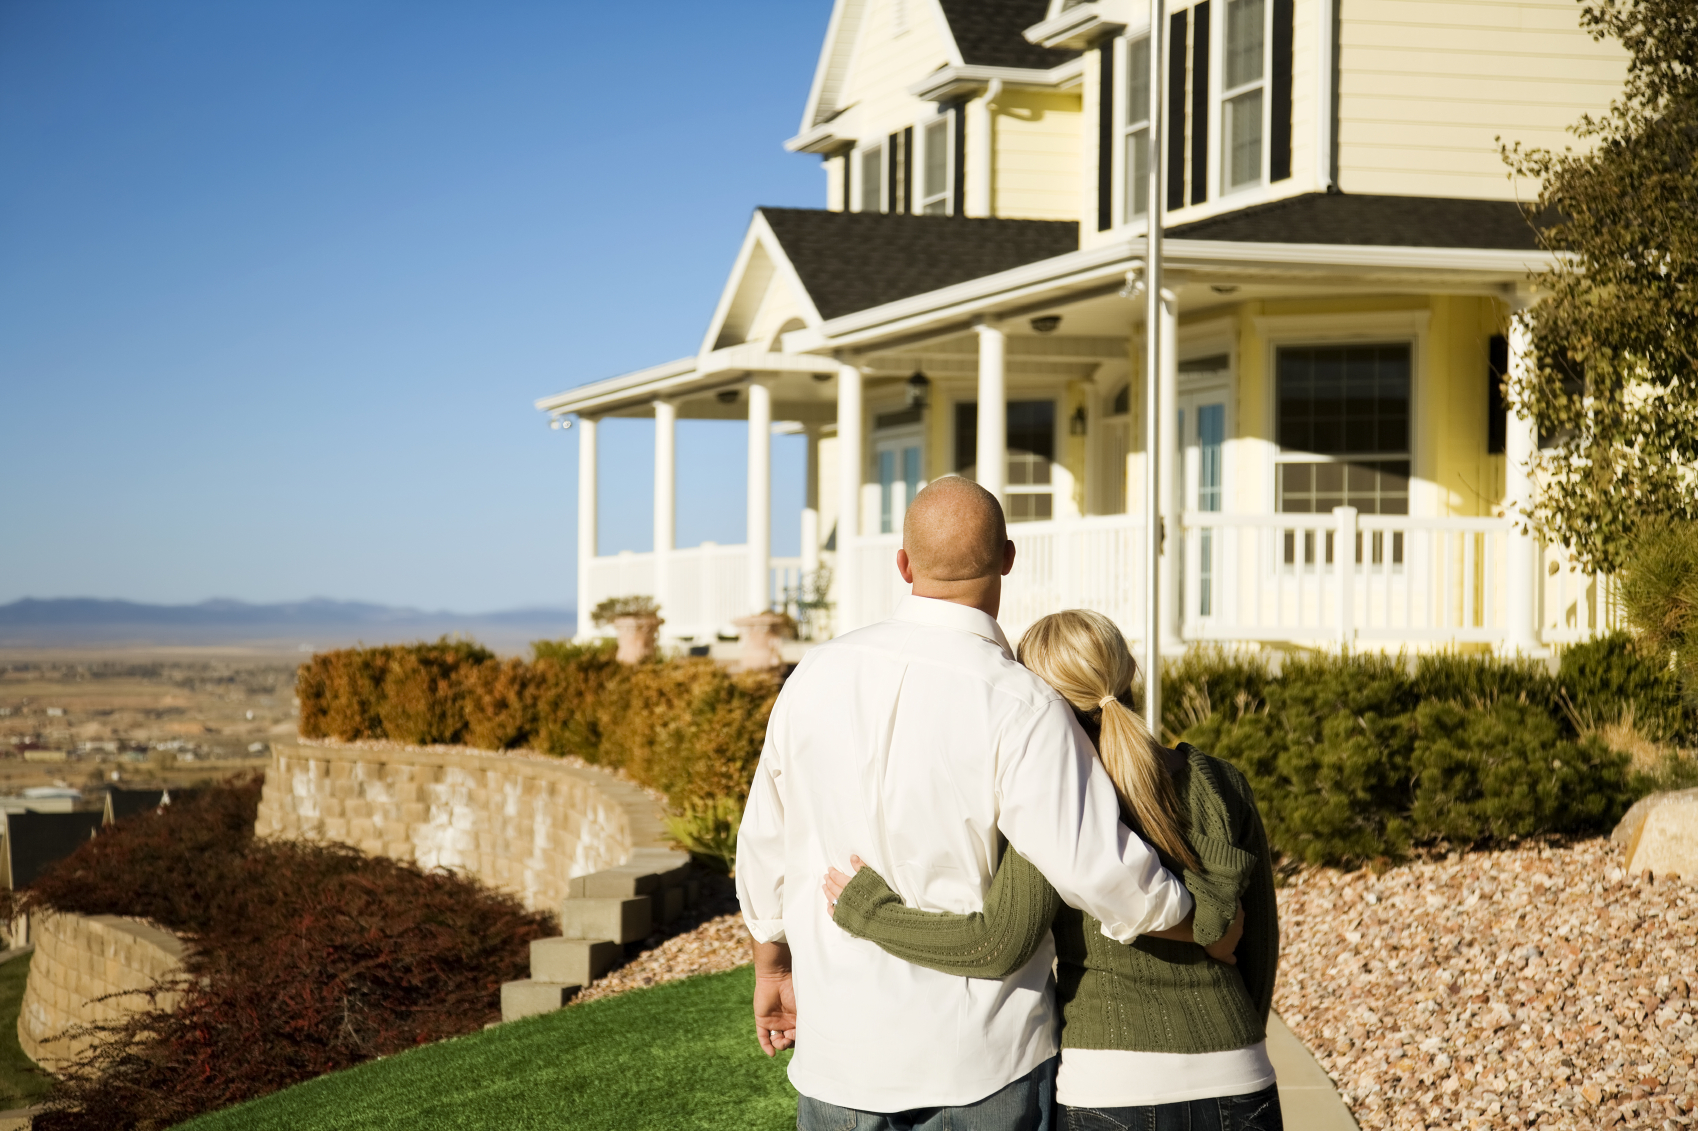 essays on buying a home How to buy a home dear friend i heard that you are planning to buy your first house recently being a first time house buyer you might not know the.